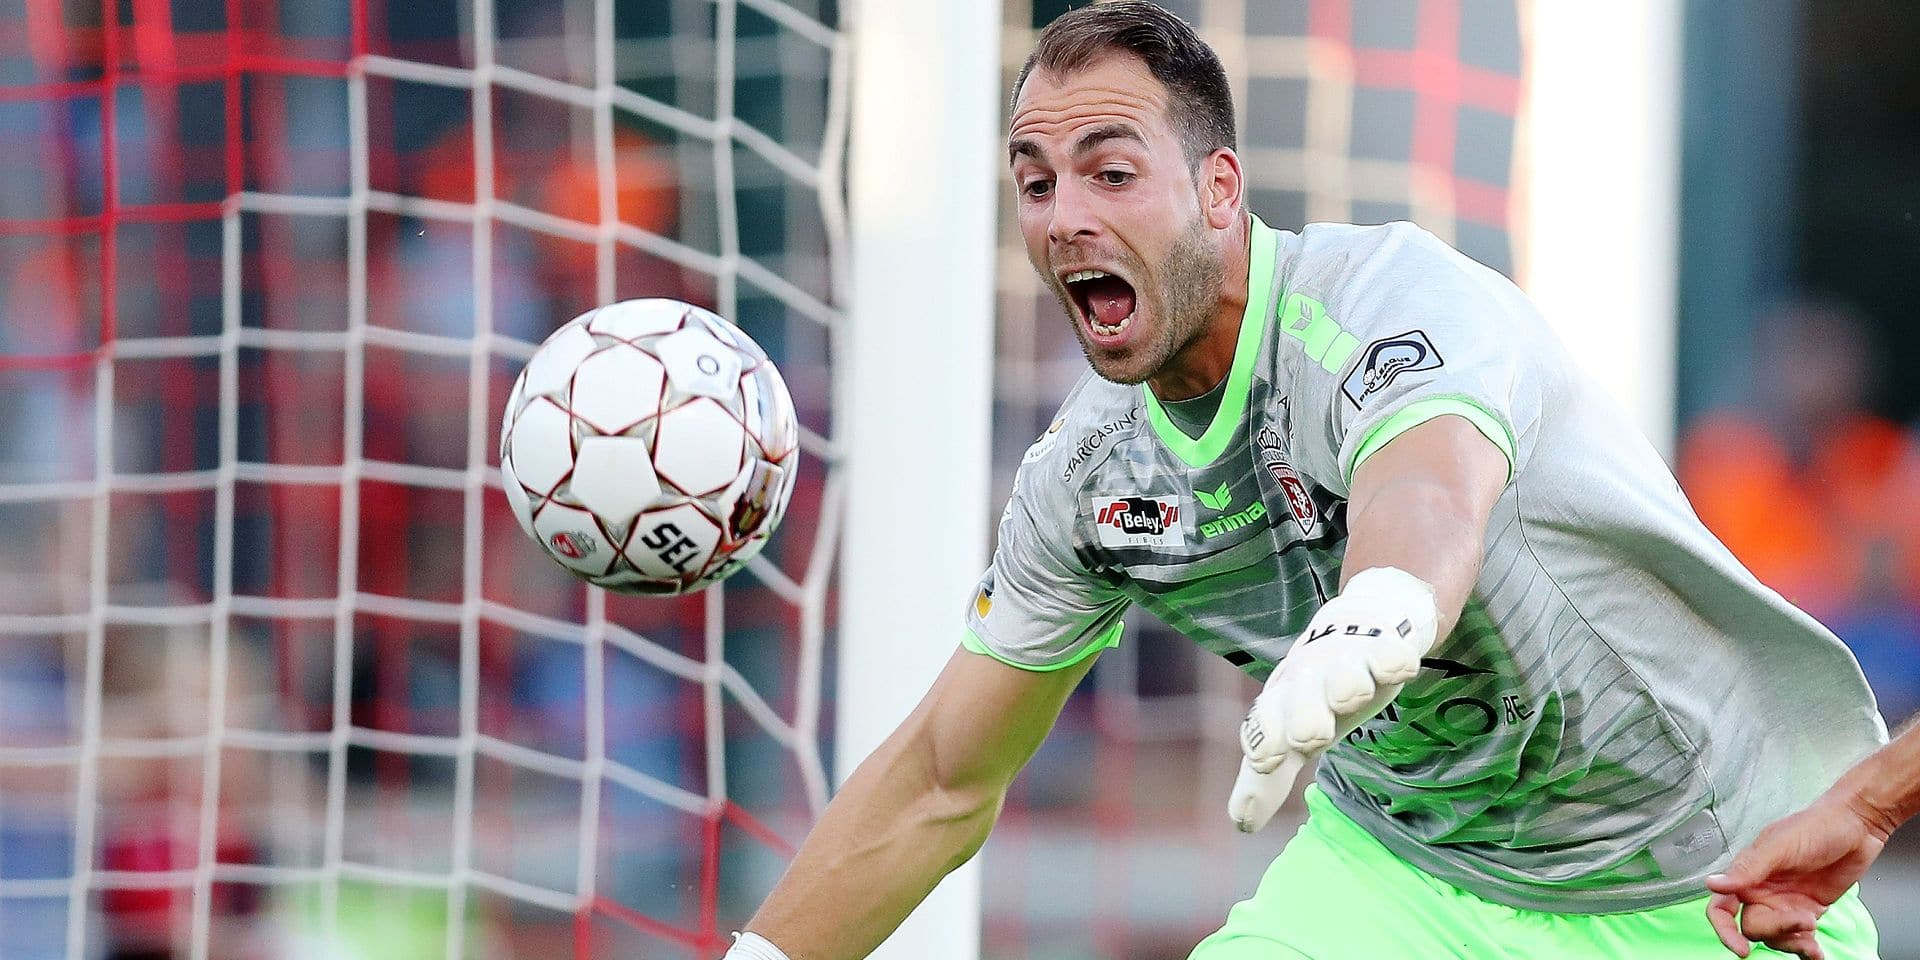 Mouscron's goalkeeper Olivier Werner pictured during the Jupiler Pro League match between Mouscron and Club Brugge, in Mouscron, Sunday 05 August 2018, on the second day of the Jupiler Pro League, the Belgian soccer championship season 2018-2019. BELGA PHOTO BRUNO FAHY